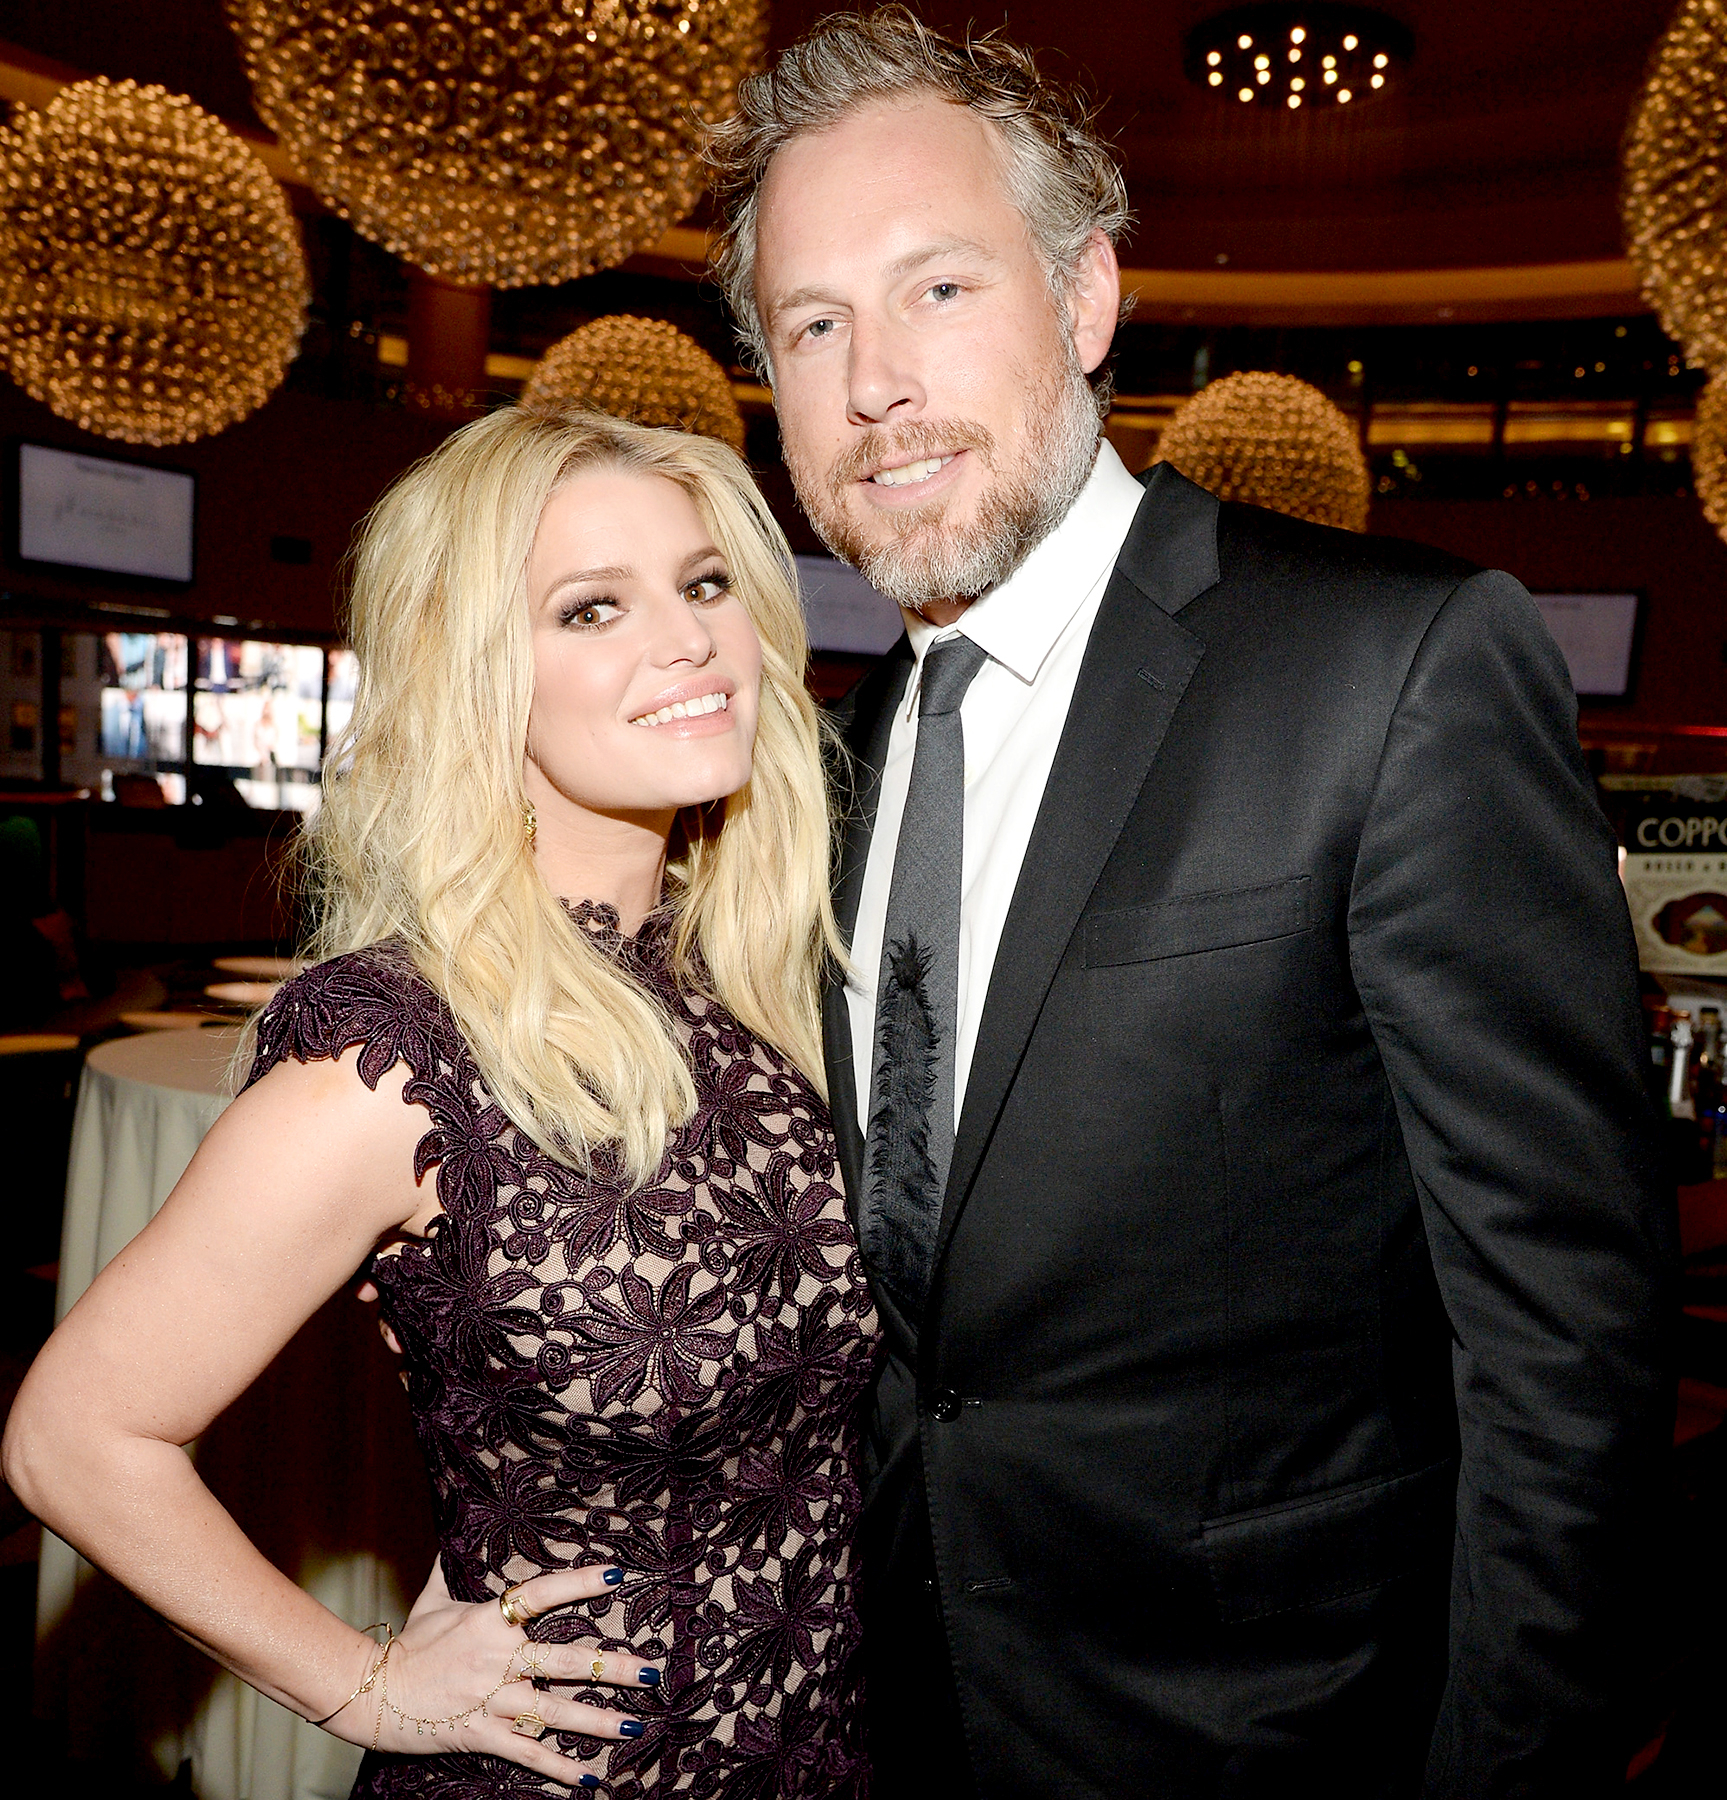 Jessica Simpson and Eric Johnson attend the 2016 YMA Fashion Scholarship Fund Geoffrey Beene National Scholarship Awards Dinner at Marriott Marquis Times Square on January 12, 2016.